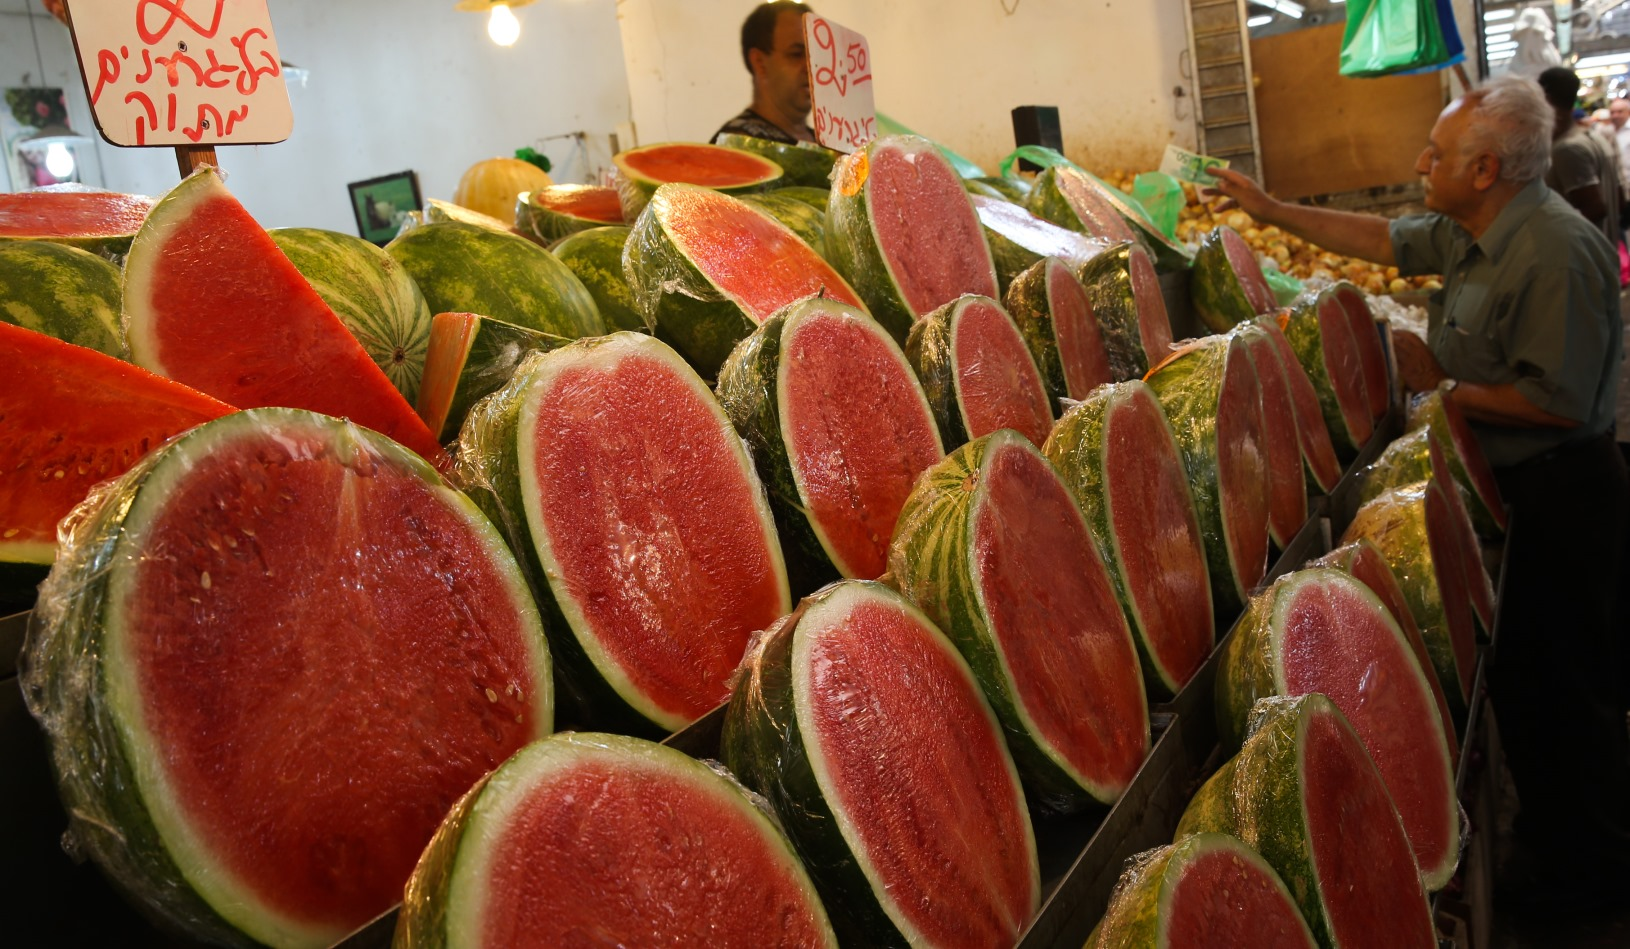 Watermelons for sale in the central Israeli city of Petah Tikva last summer. Photo by Nati Shohat/FLASH90